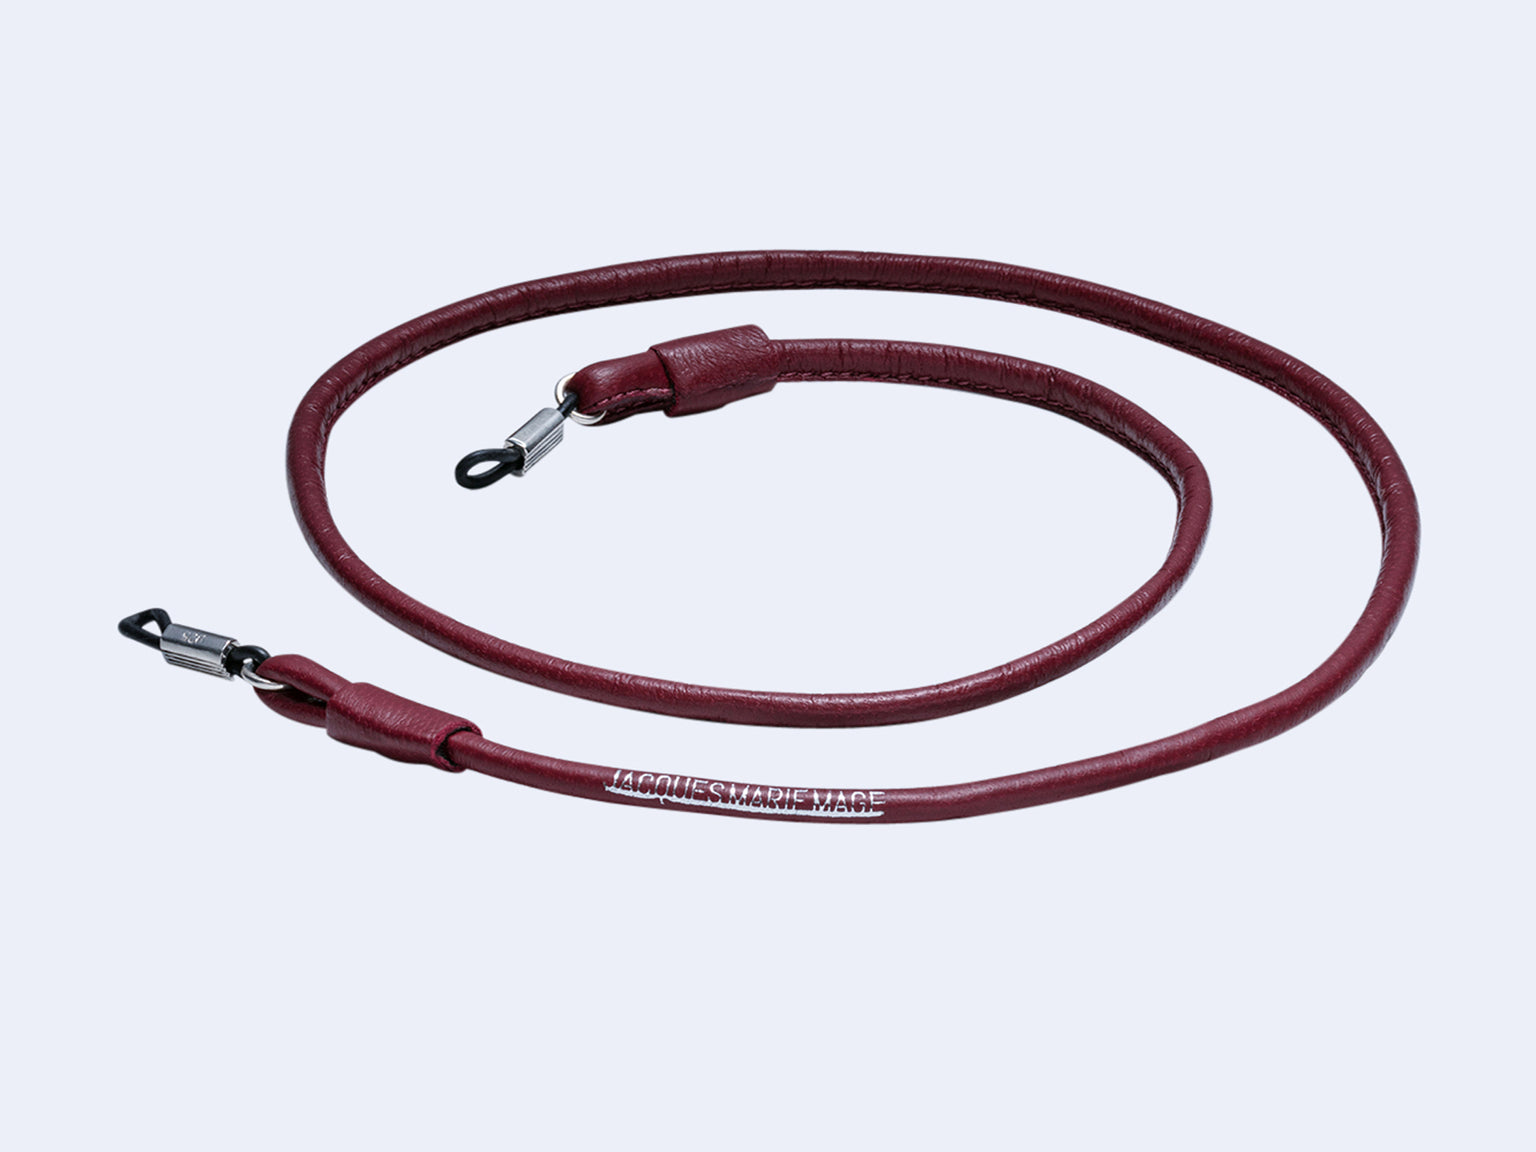 Jacques Marie Mage Round Strap (Burgundy)